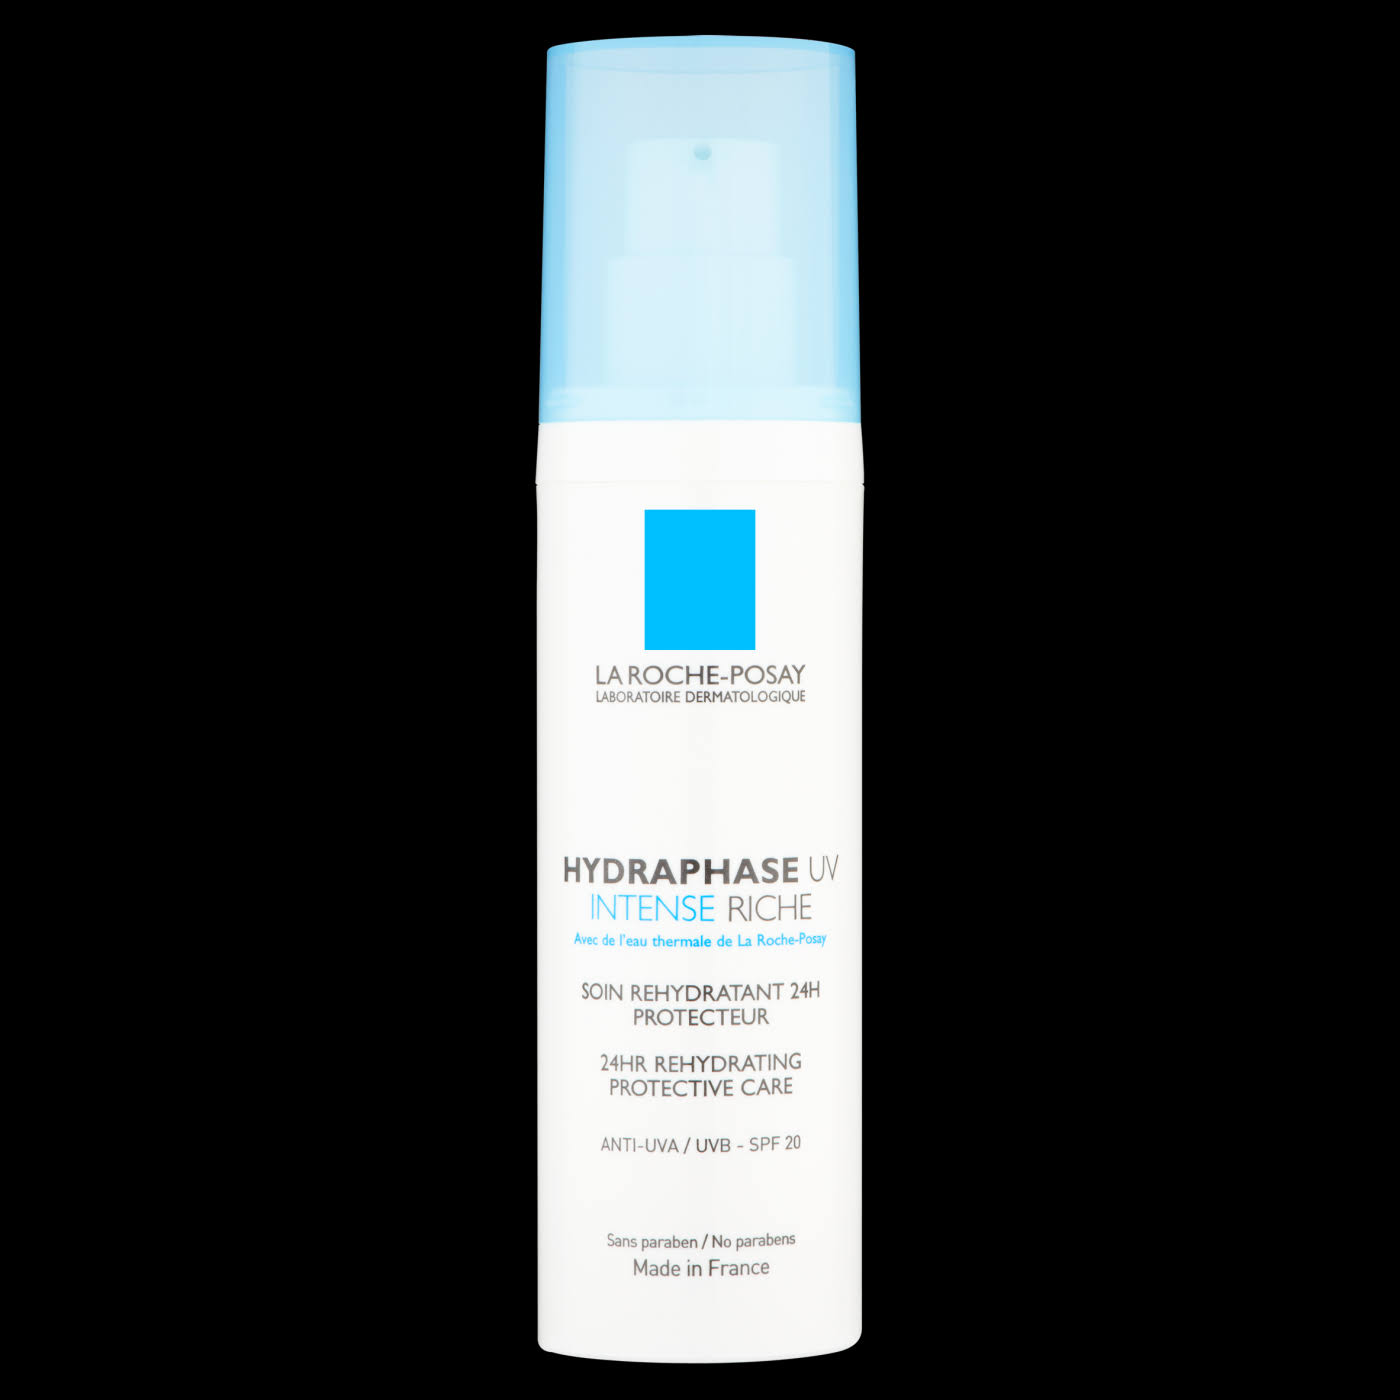 La Roche-Posay Hydraphase UV Intense Rich - 50ml